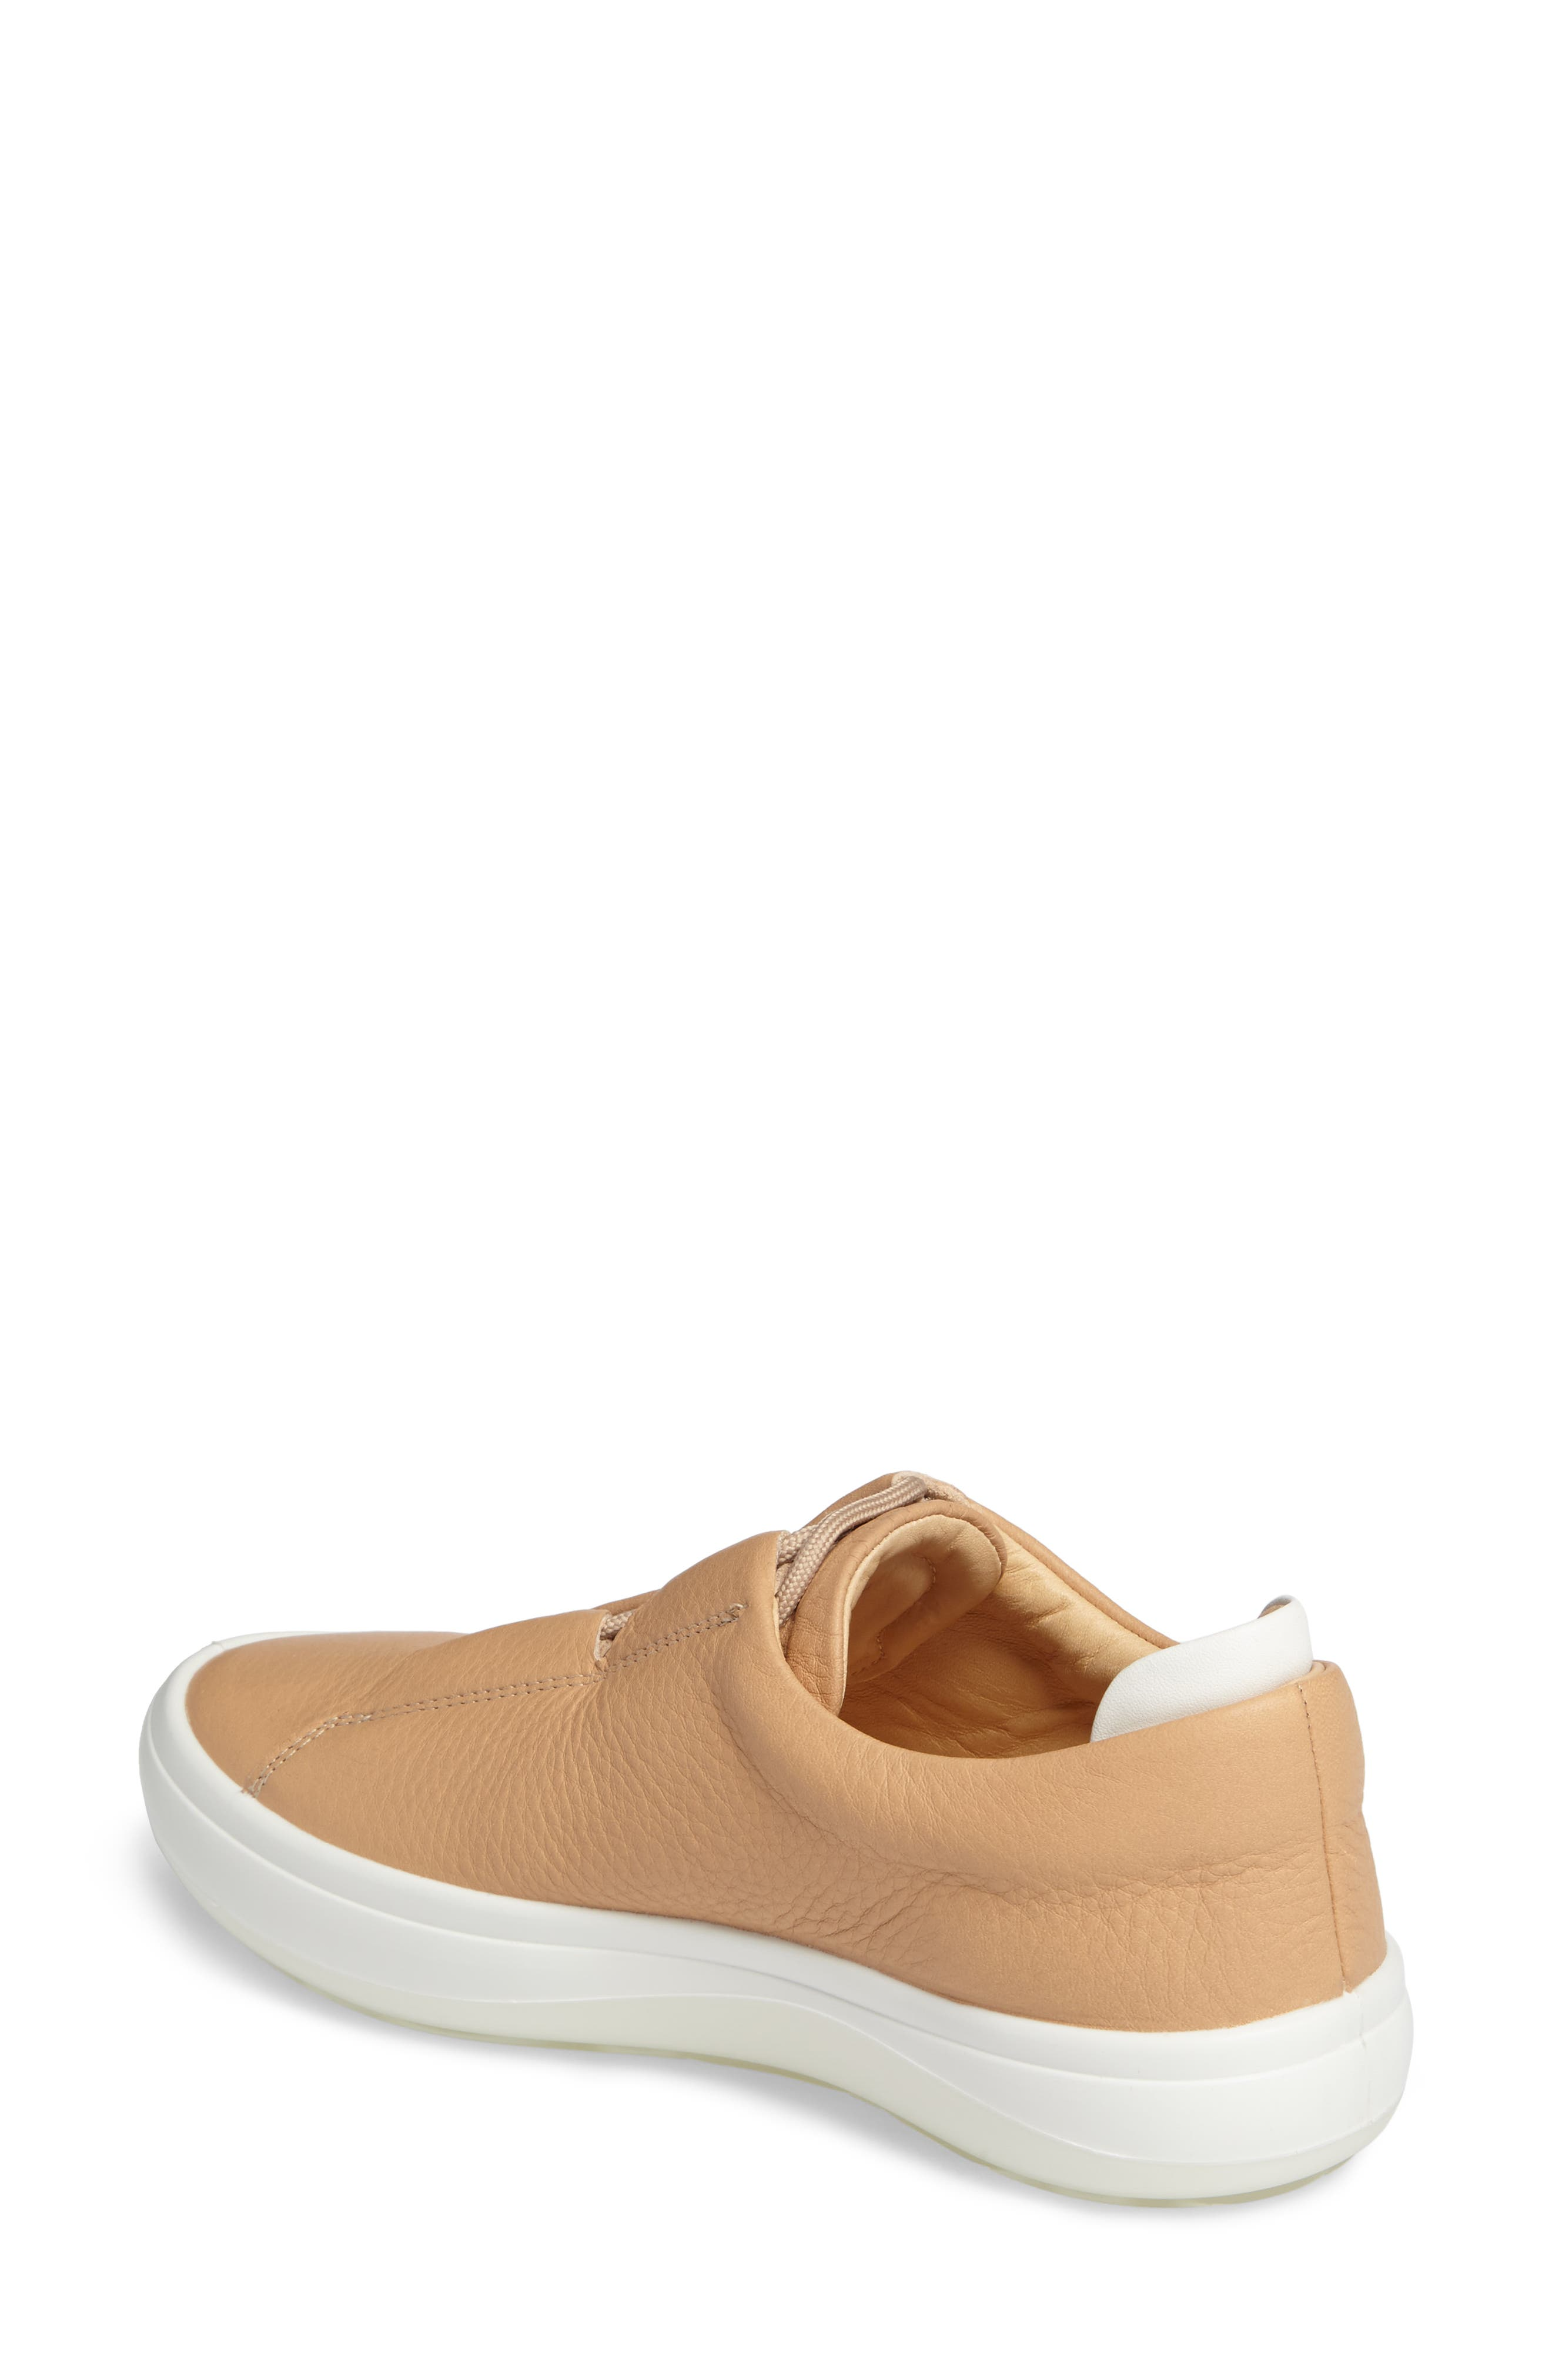 Kinhin Low Top Sneaker,                             Alternate thumbnail 2, color,                             Volluto Leather